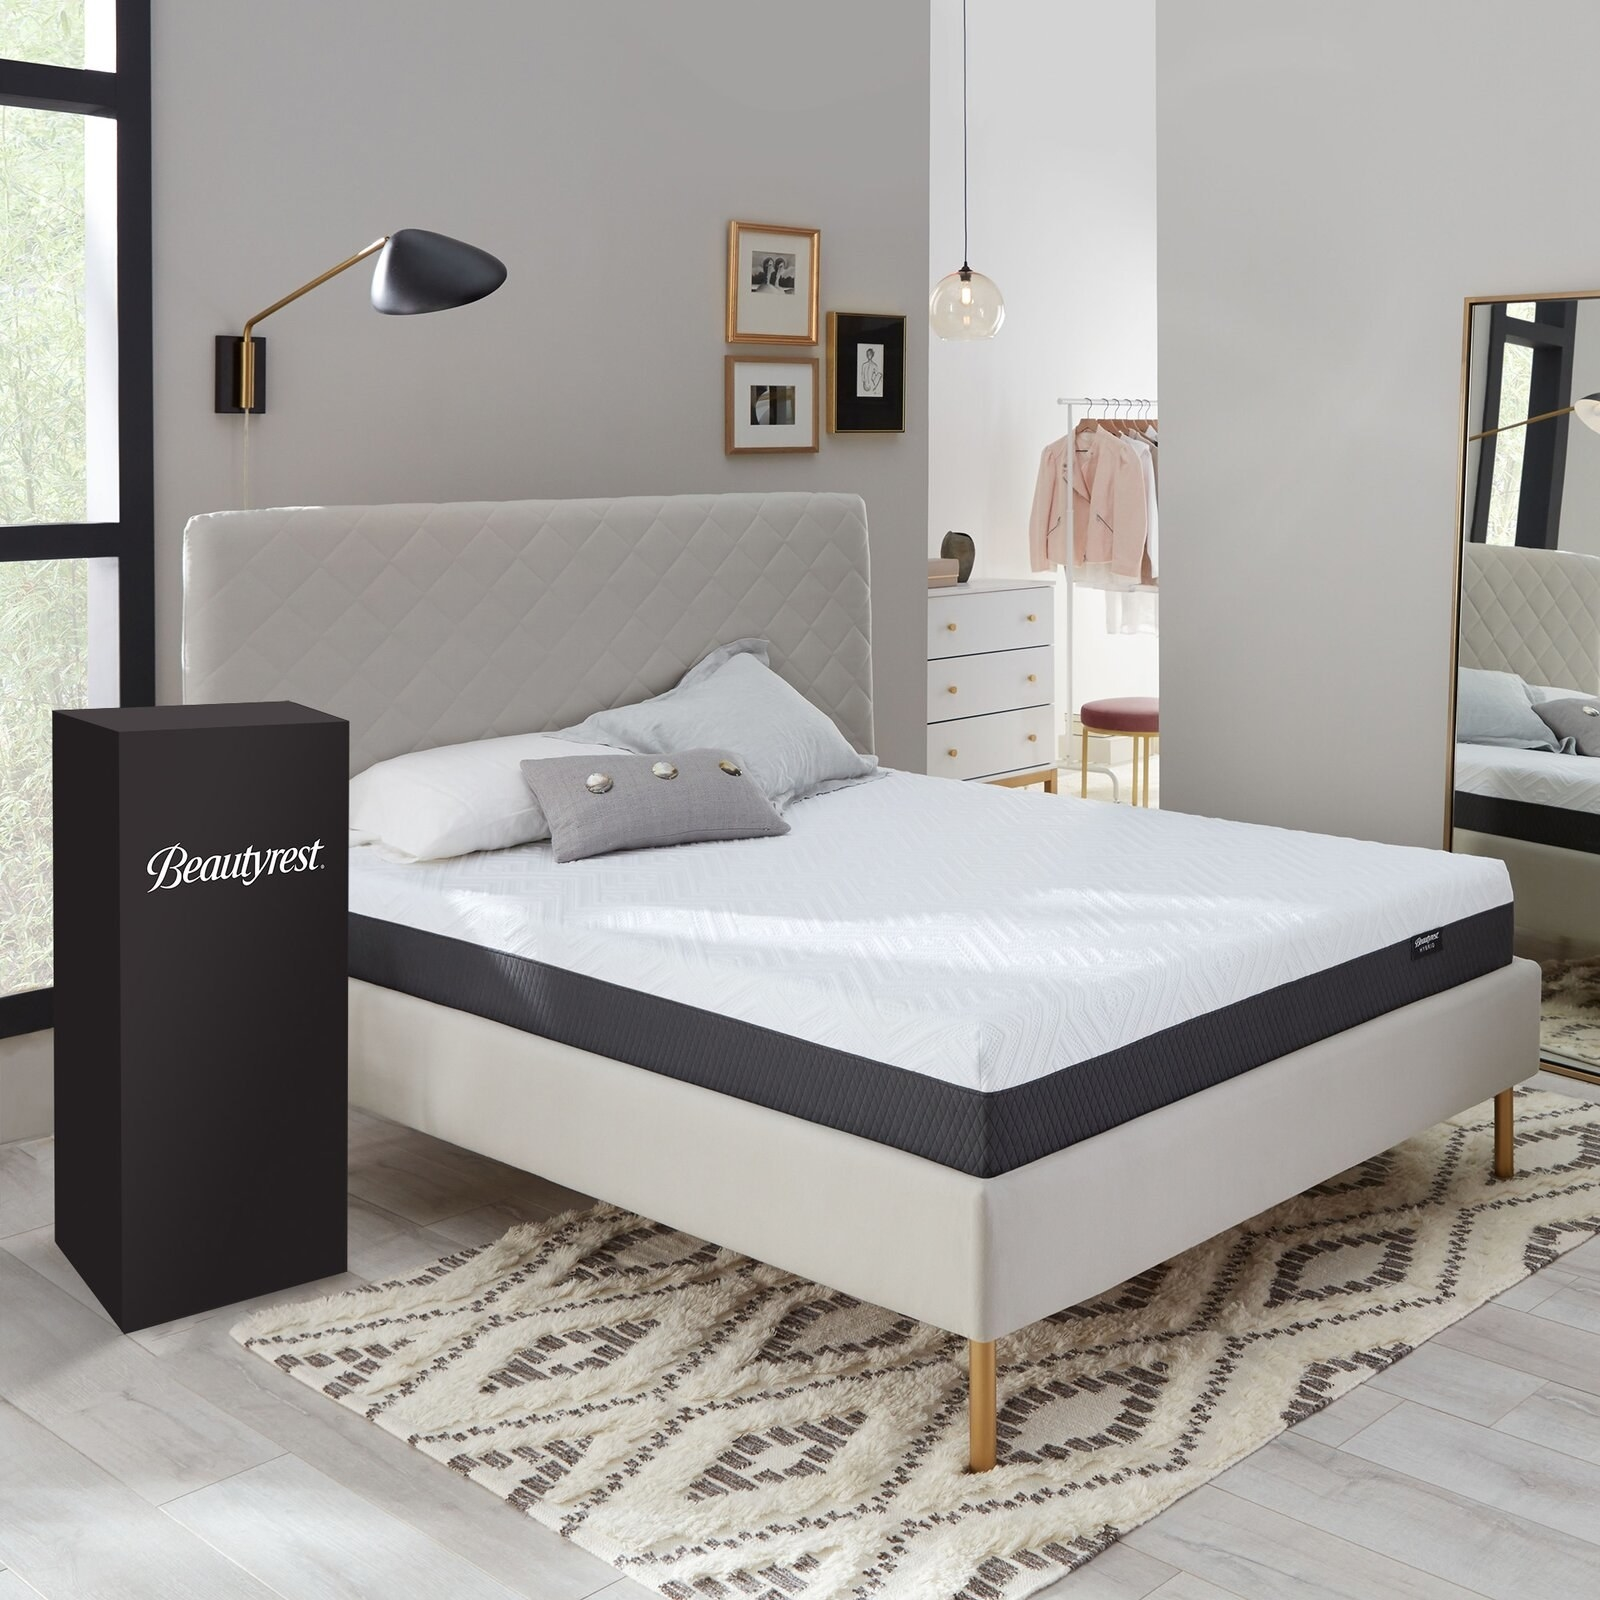 The mattress with its box